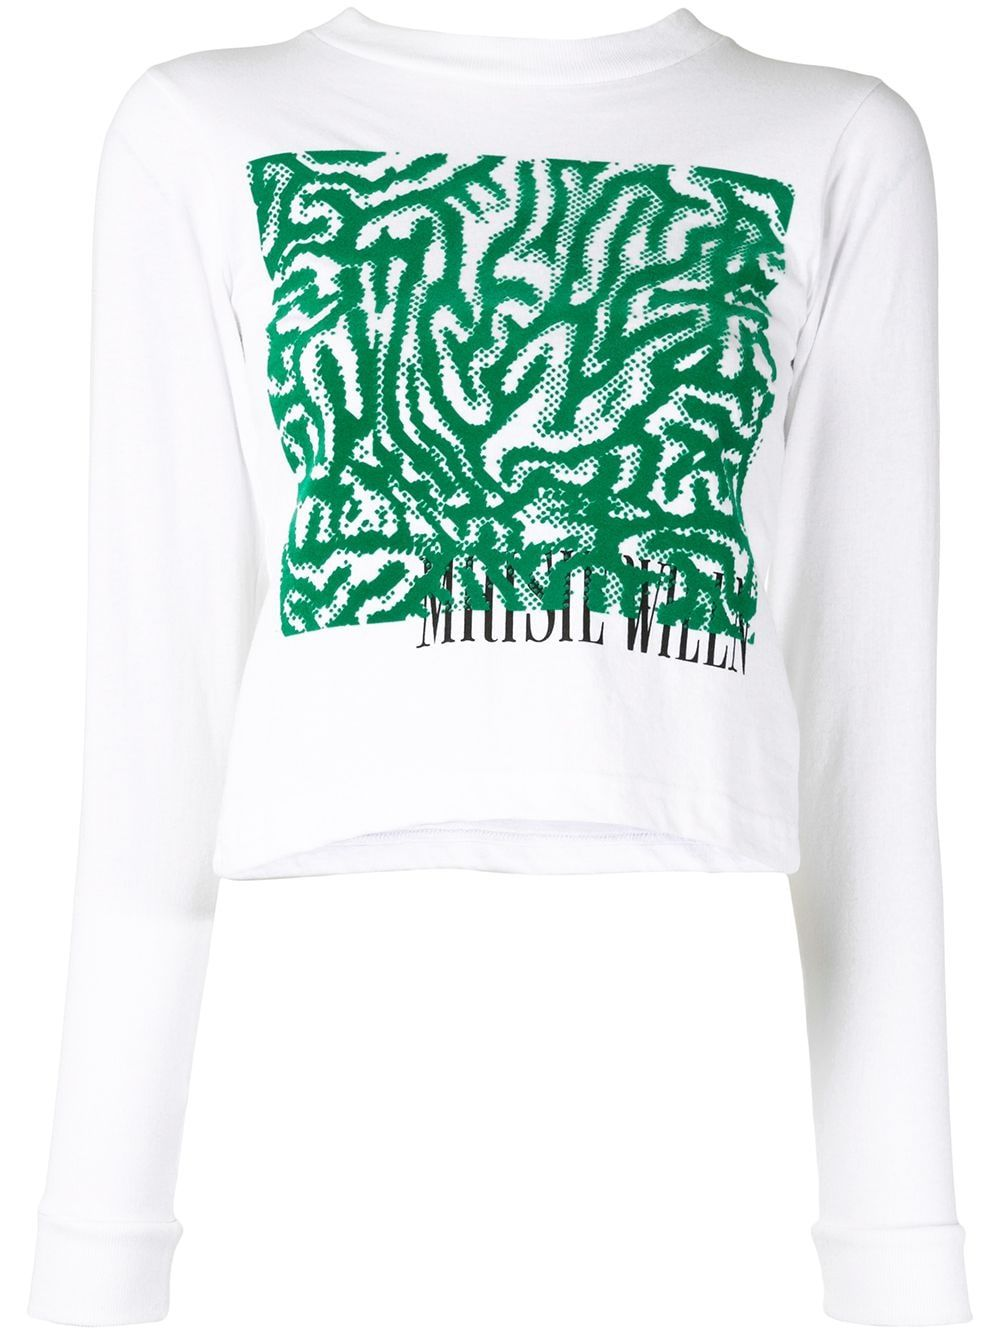 White cotton YS104 graphic T-shirt from Maisie Wilen featuring a round neck, a print to the front, long sleeves and a straight hem.